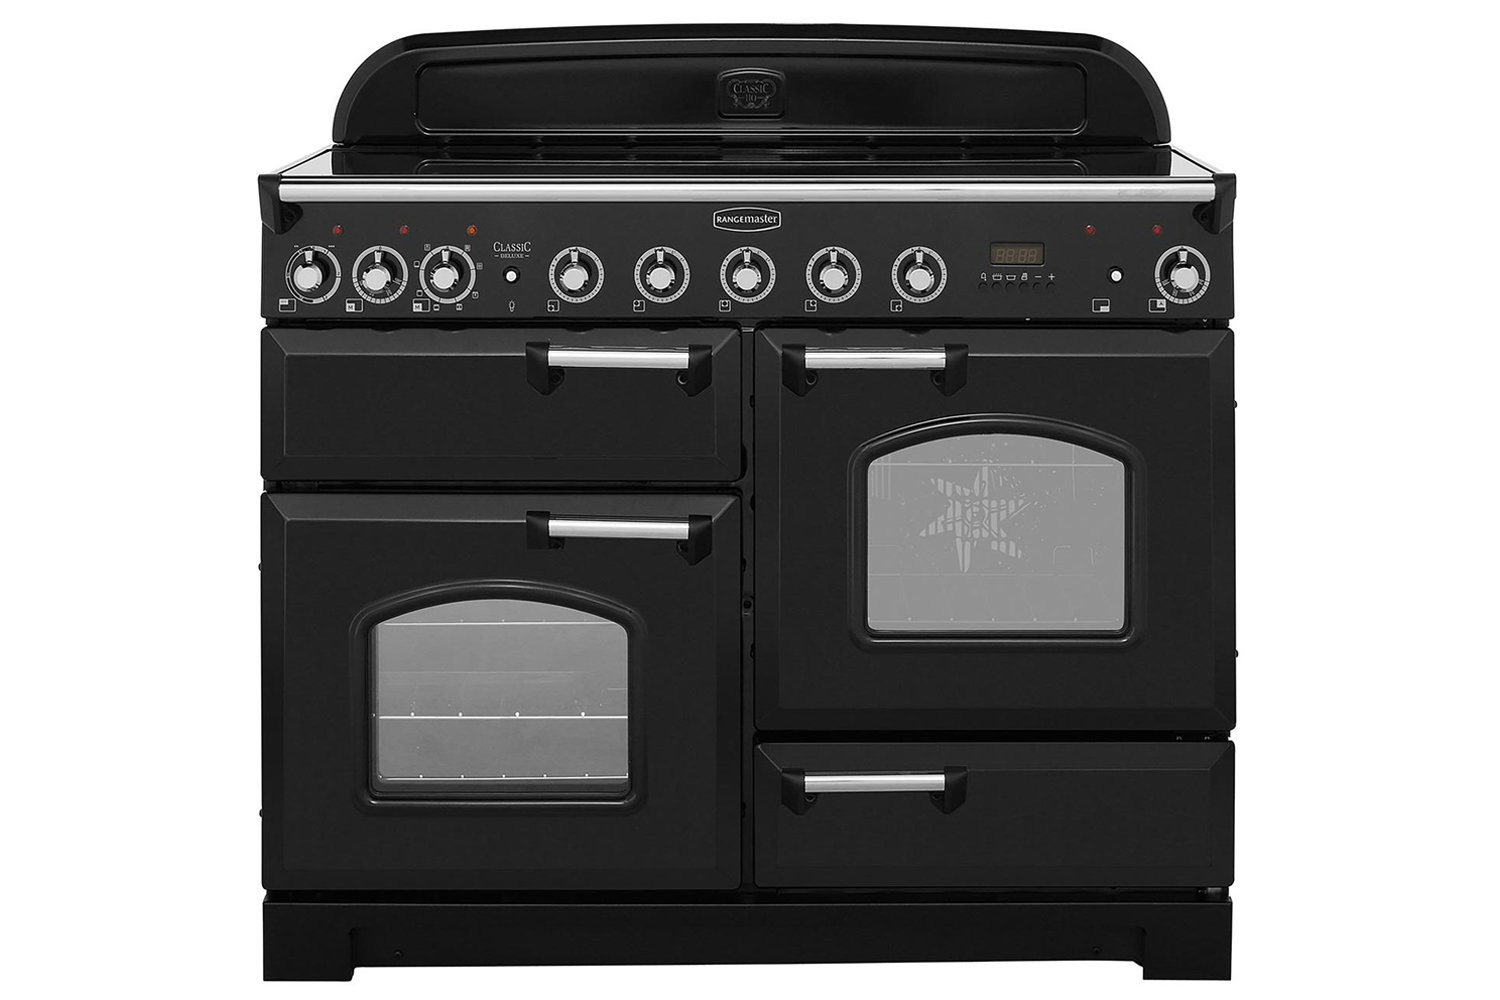 Classic Cuisine Induction Cooker Instructions Rangemaster 110cm Classic Deluxe Induction Range Cooker